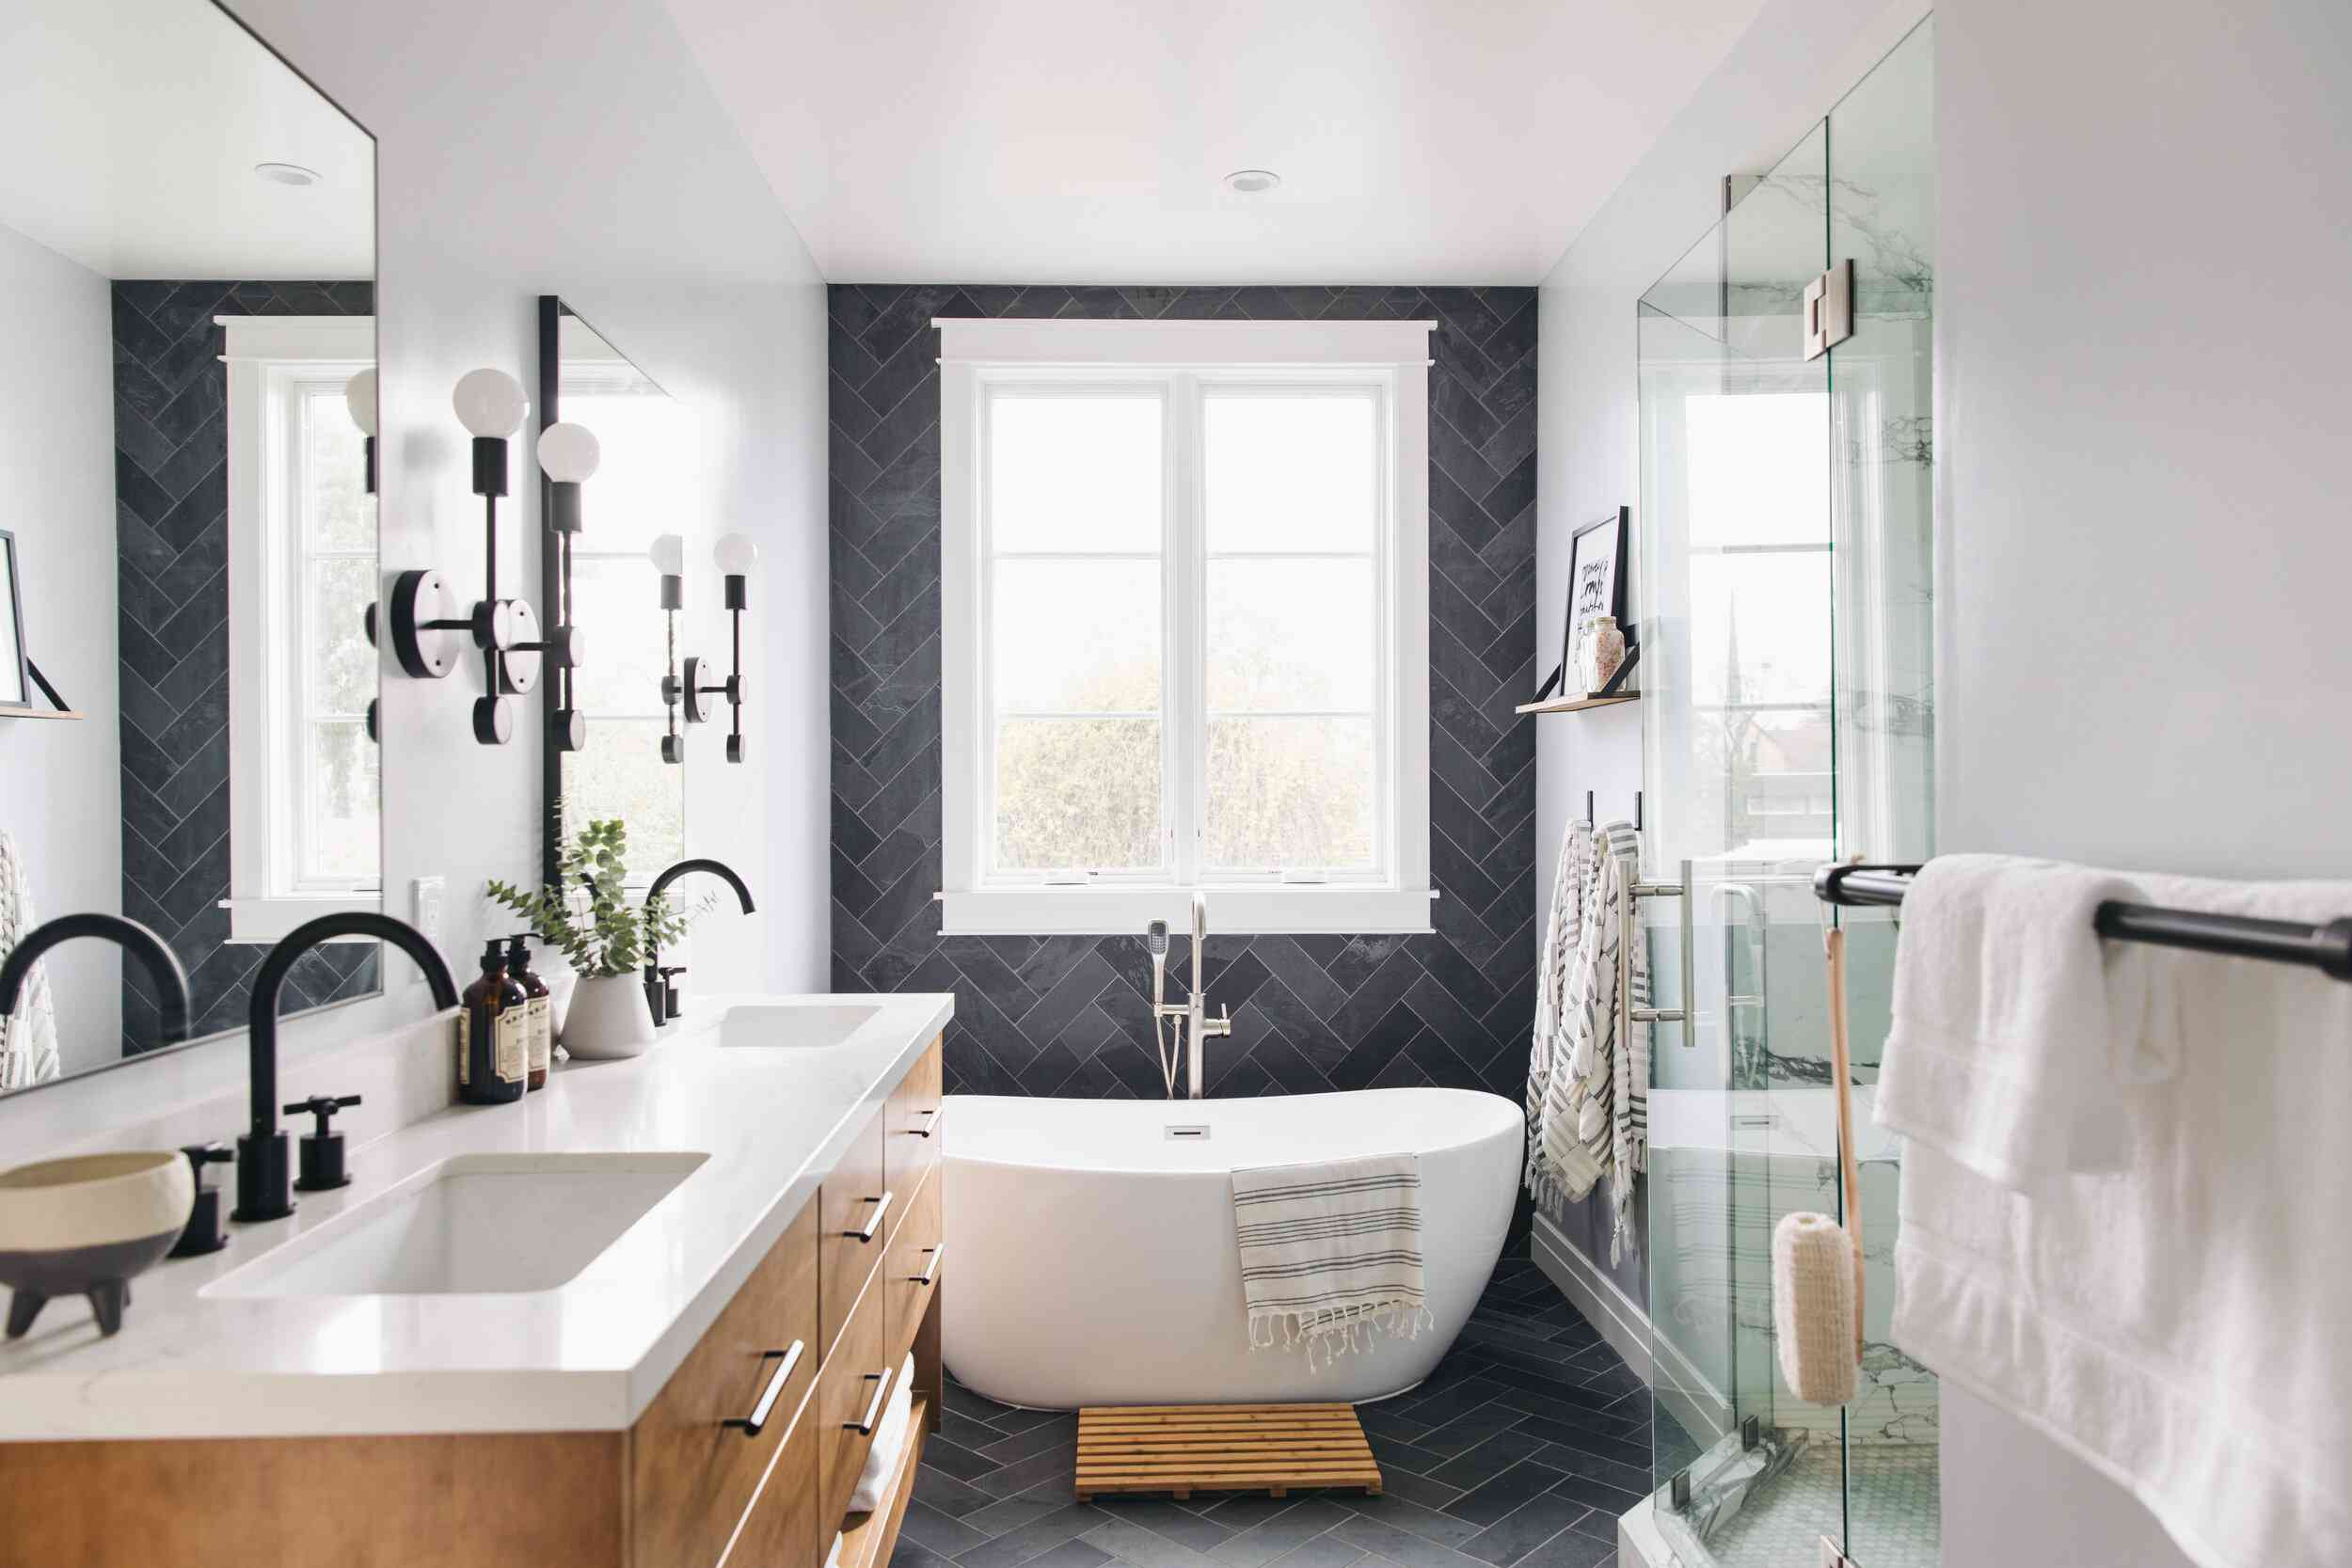 A full bathroom with a wall and floor lined with black tiles